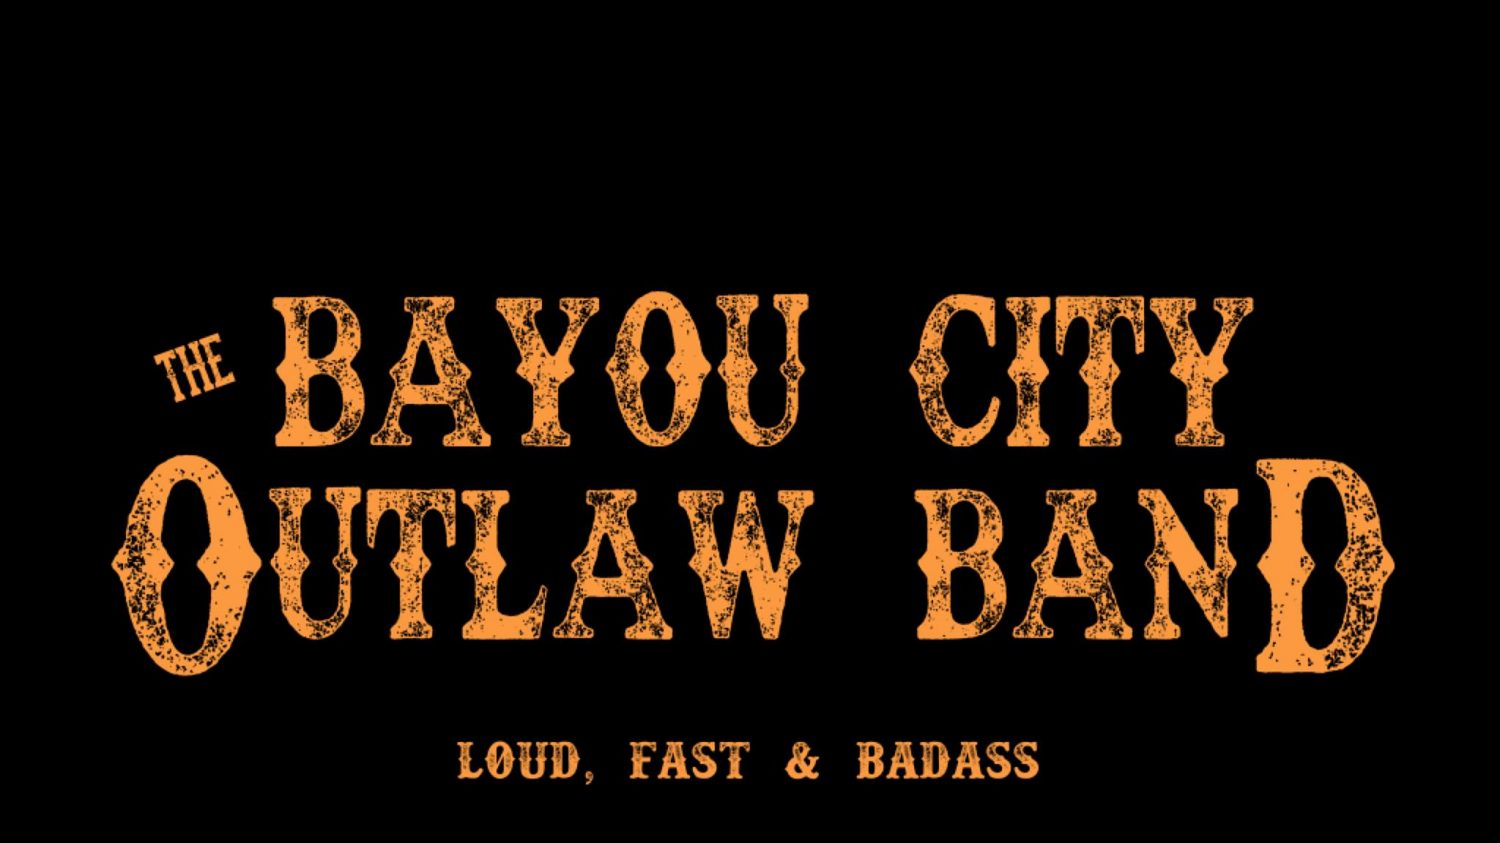 The Bayou City Outlaw Band